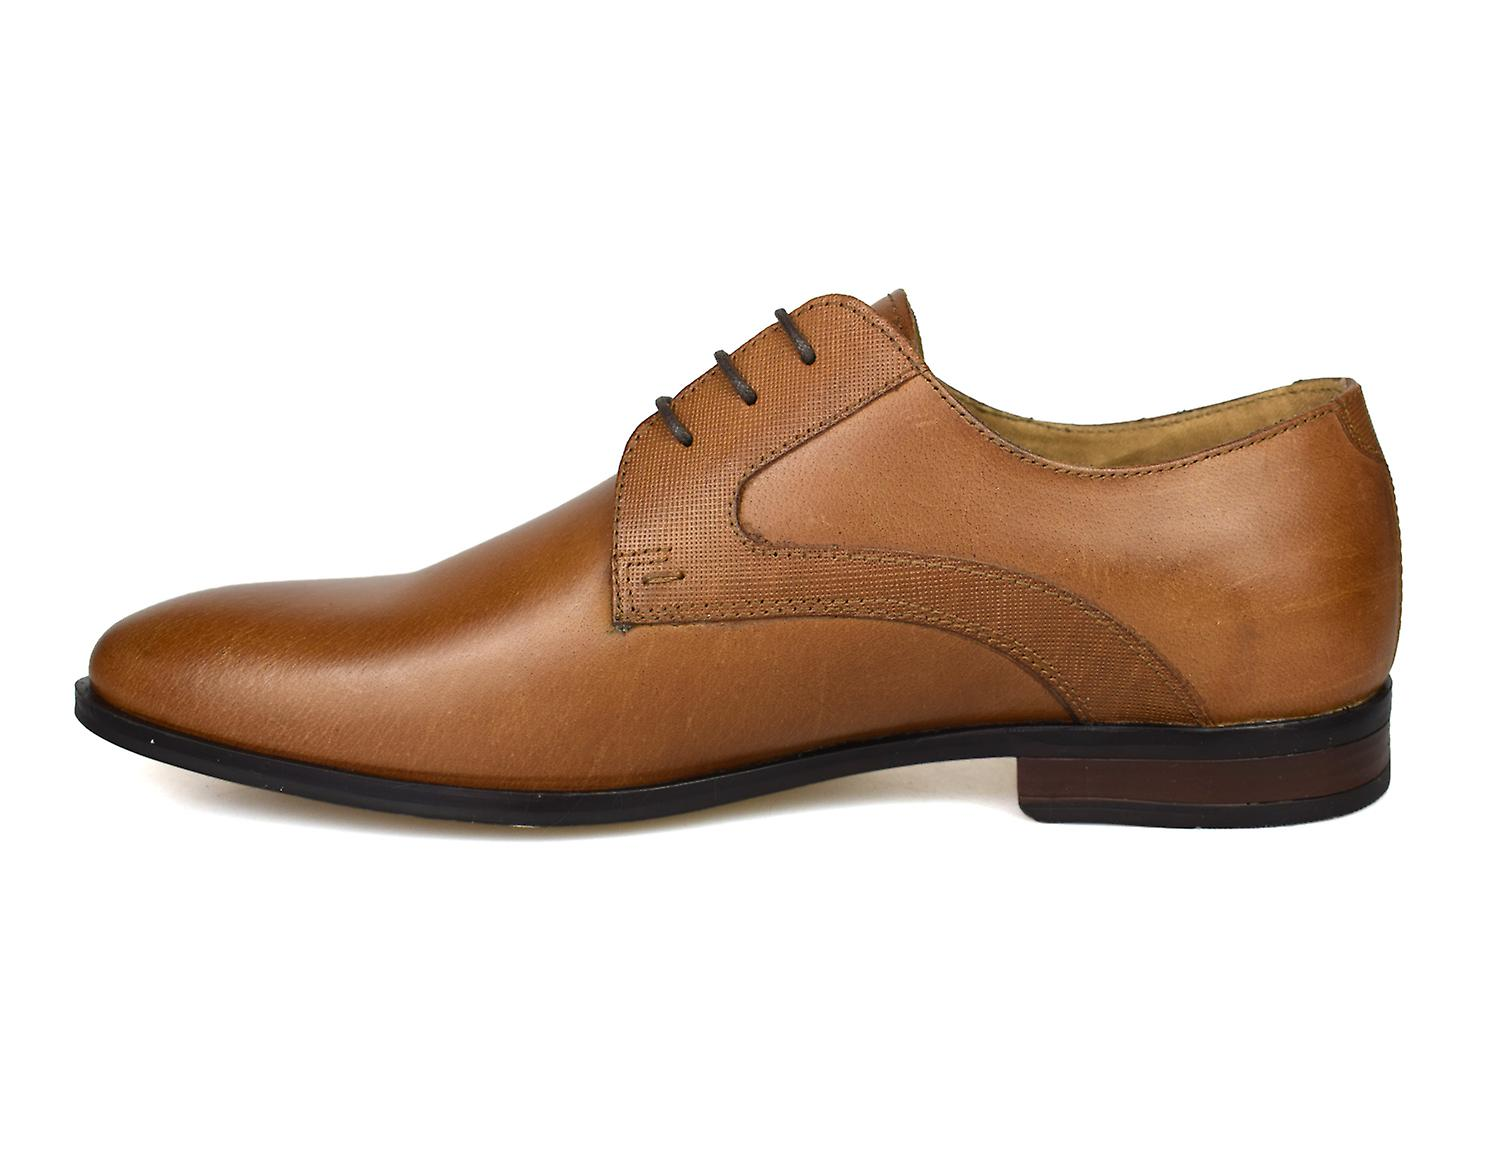 Red Tape Linton Tan Leather Formal Mens Shoes